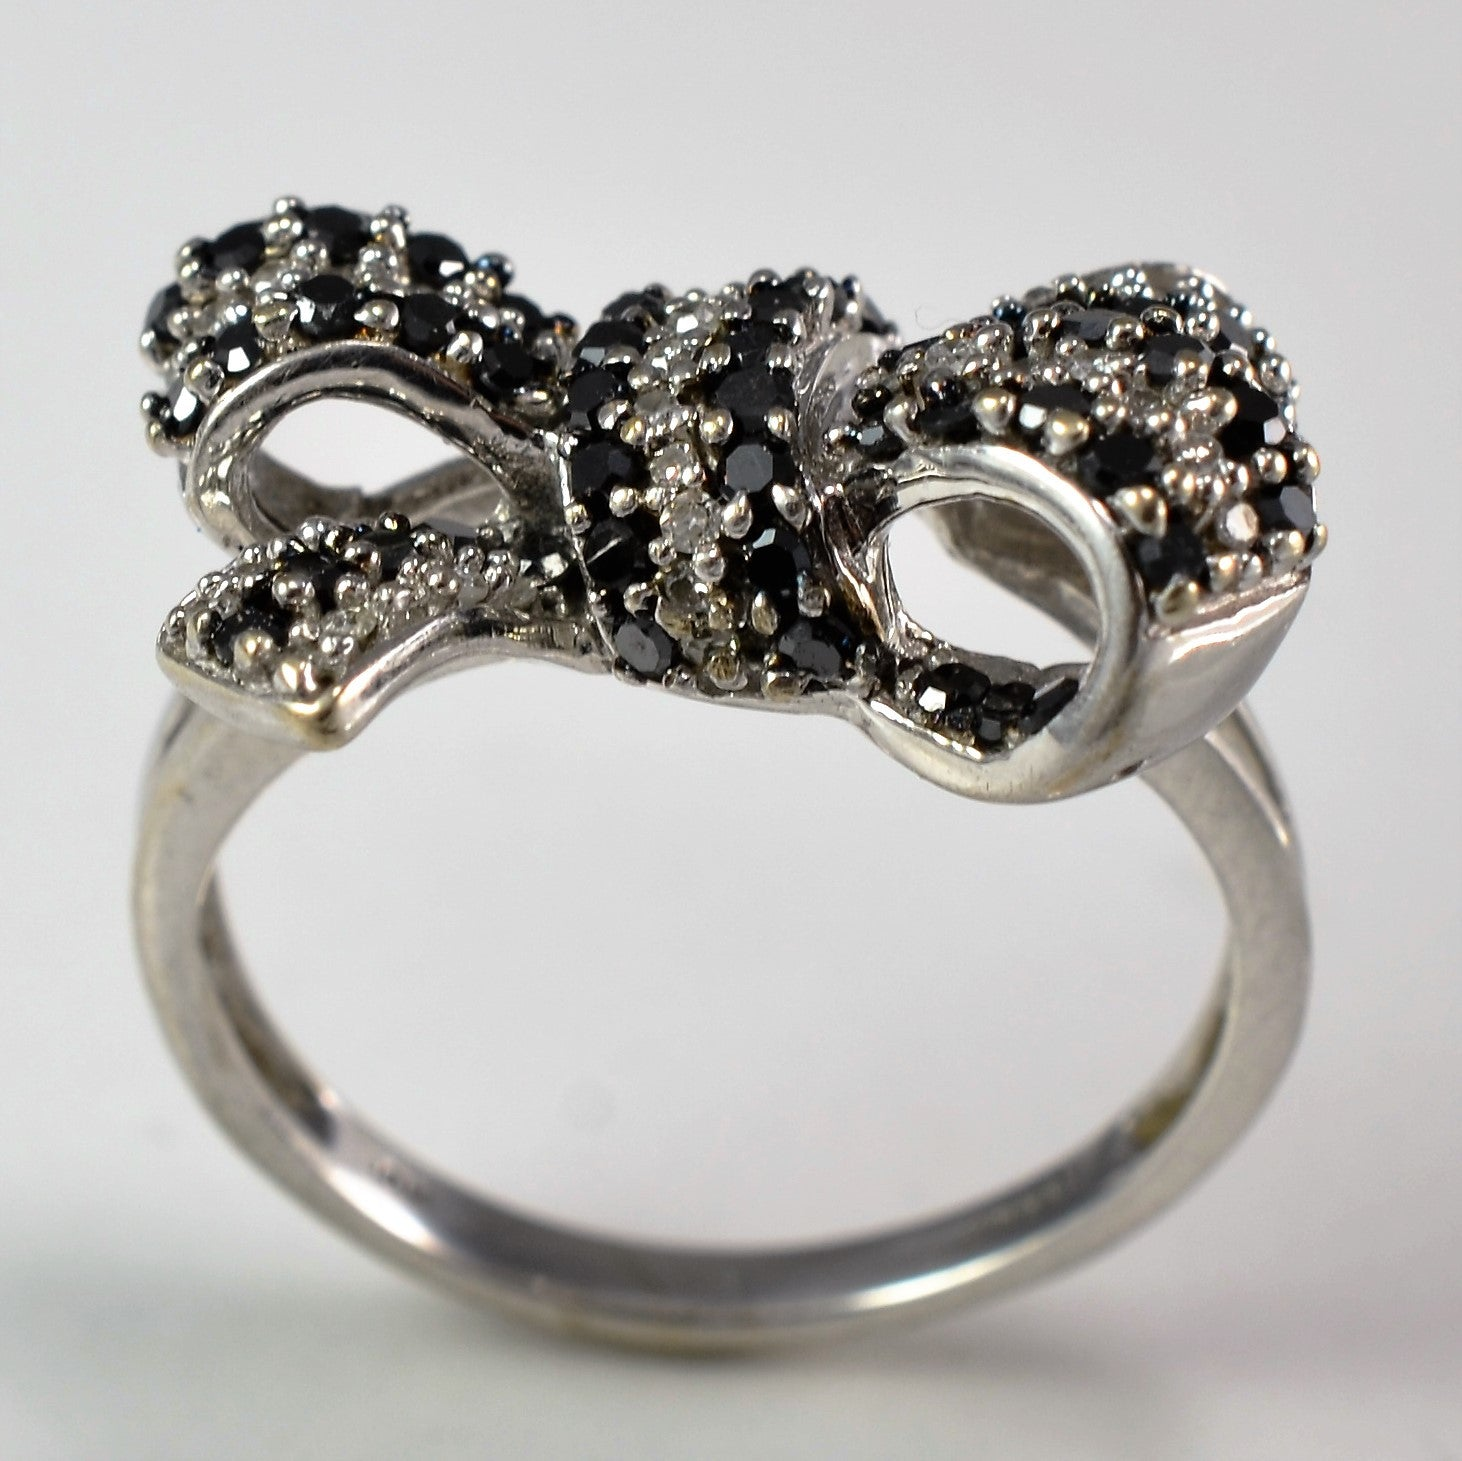 Black & White Pave Diamond Bow Ring 0 60 ctw SZ 4